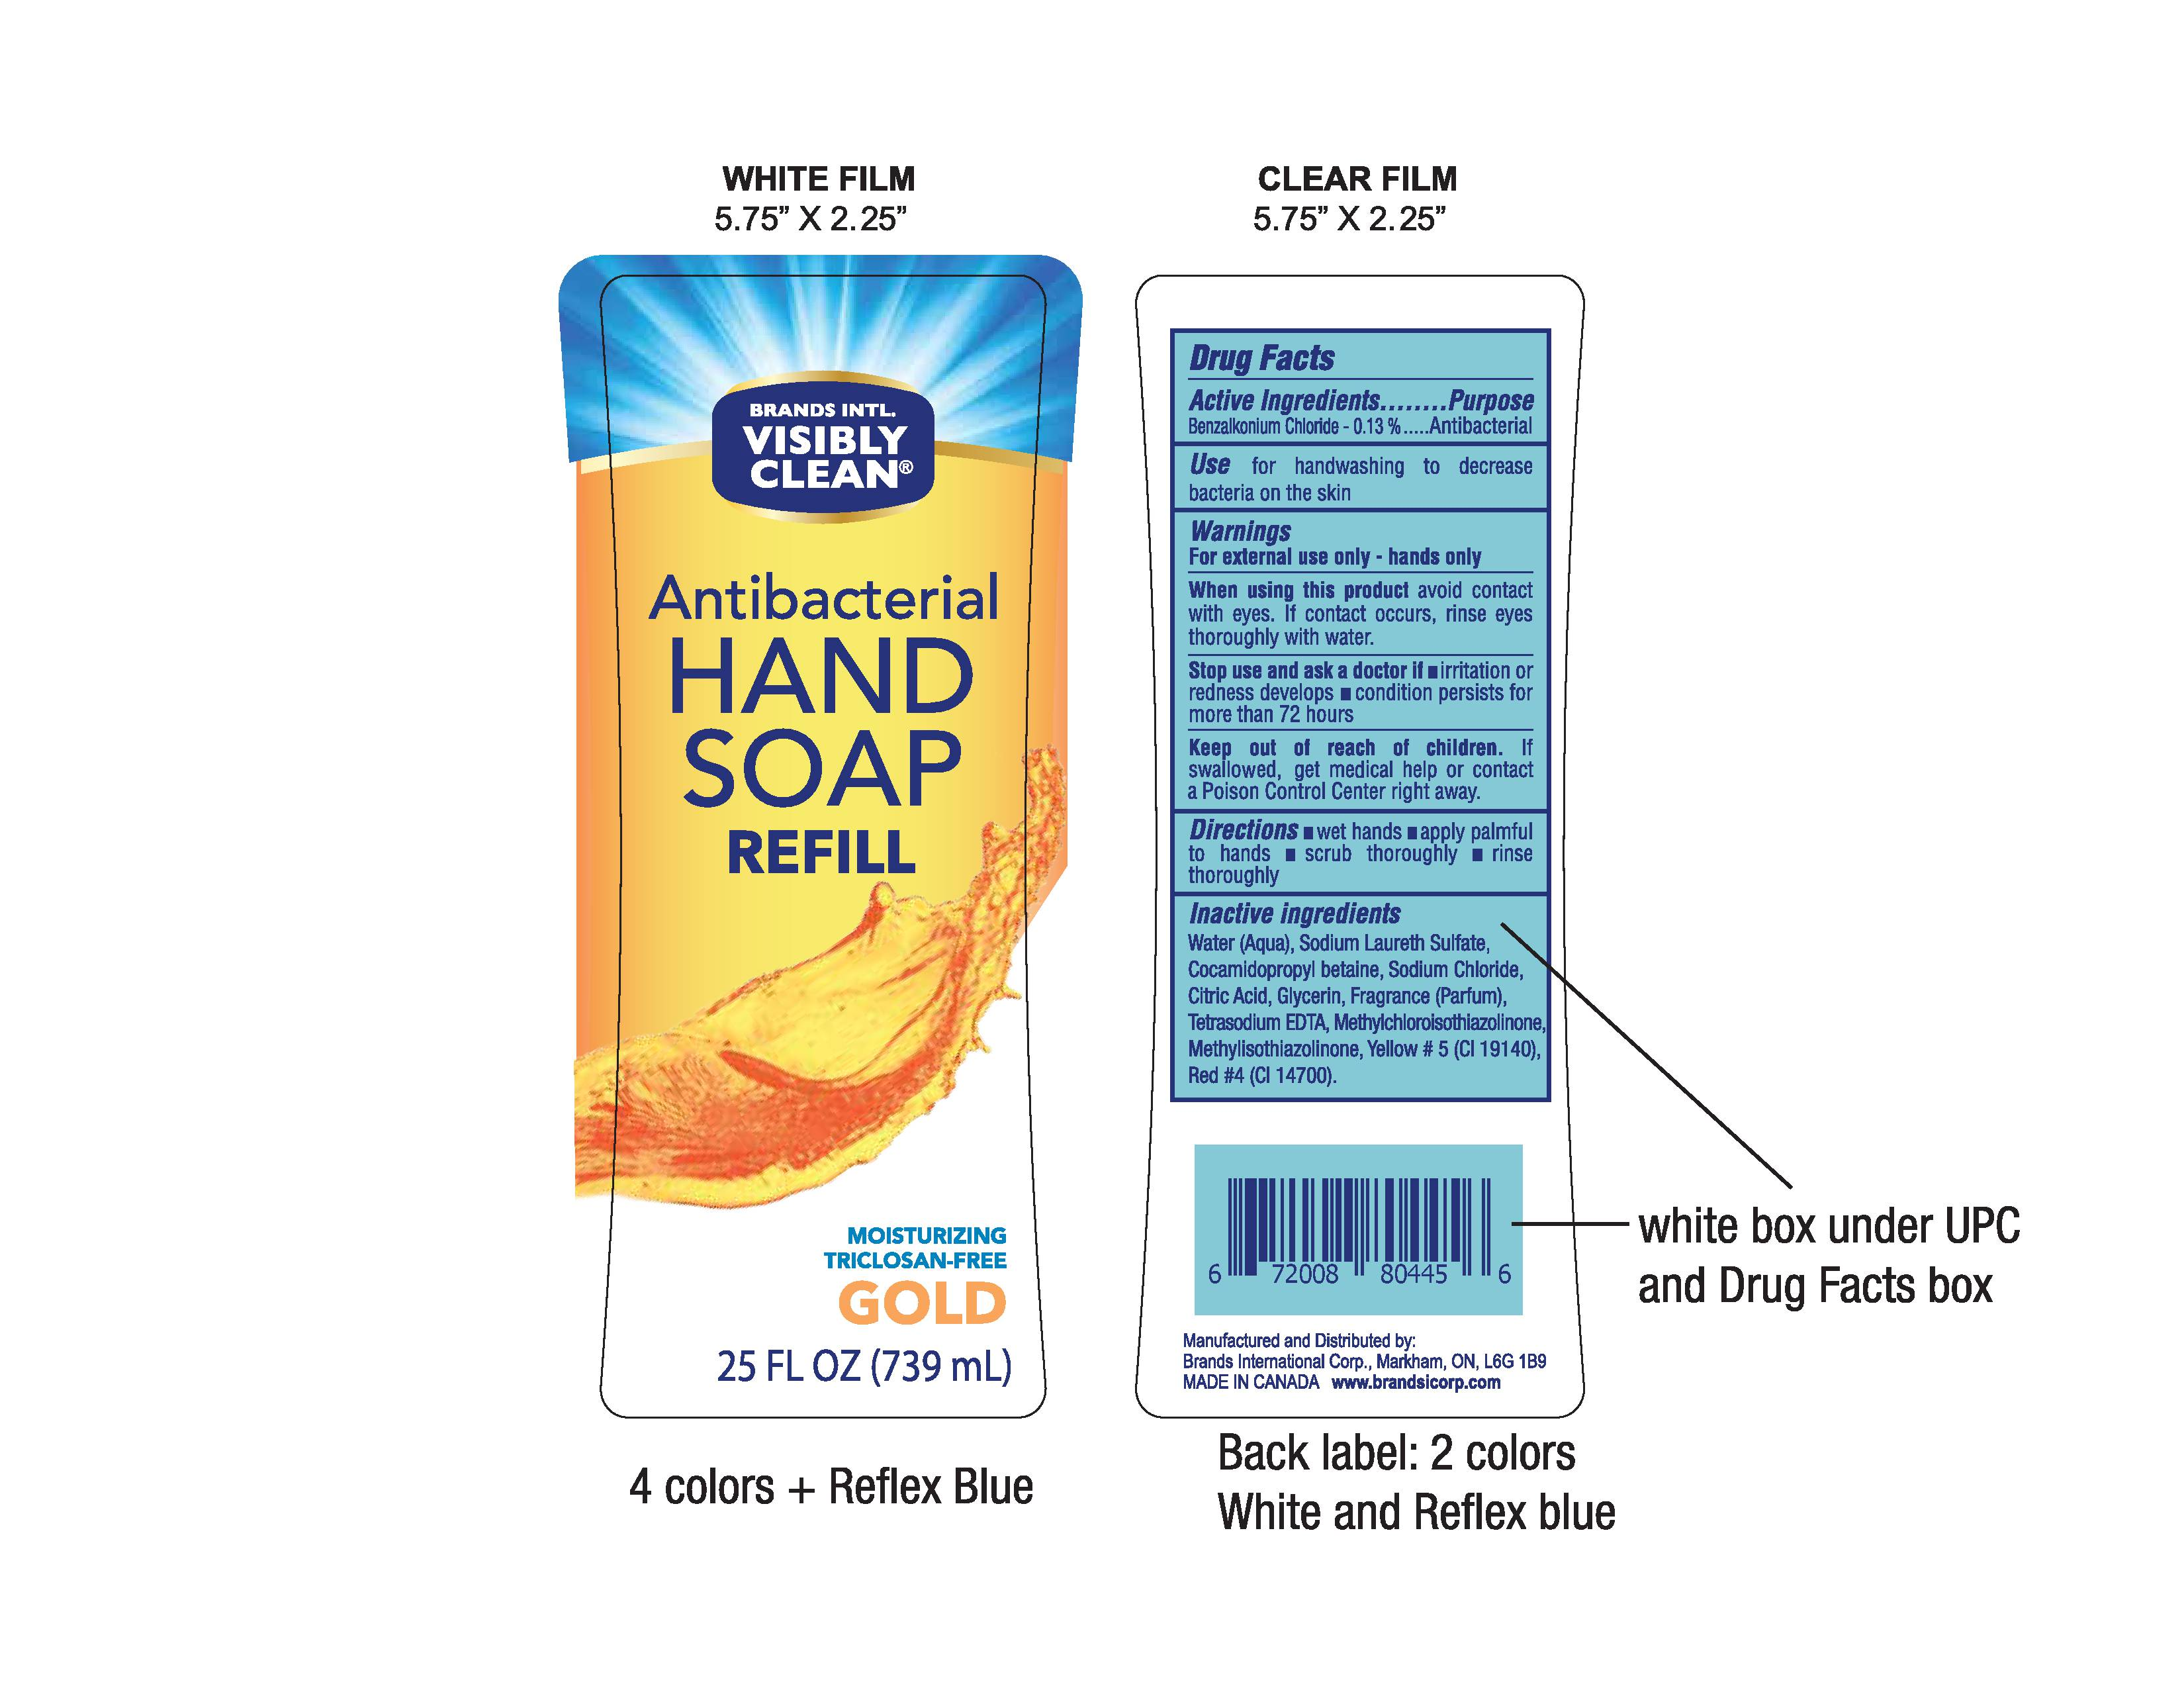 Visibly Clean Antibacterial Hand Soap